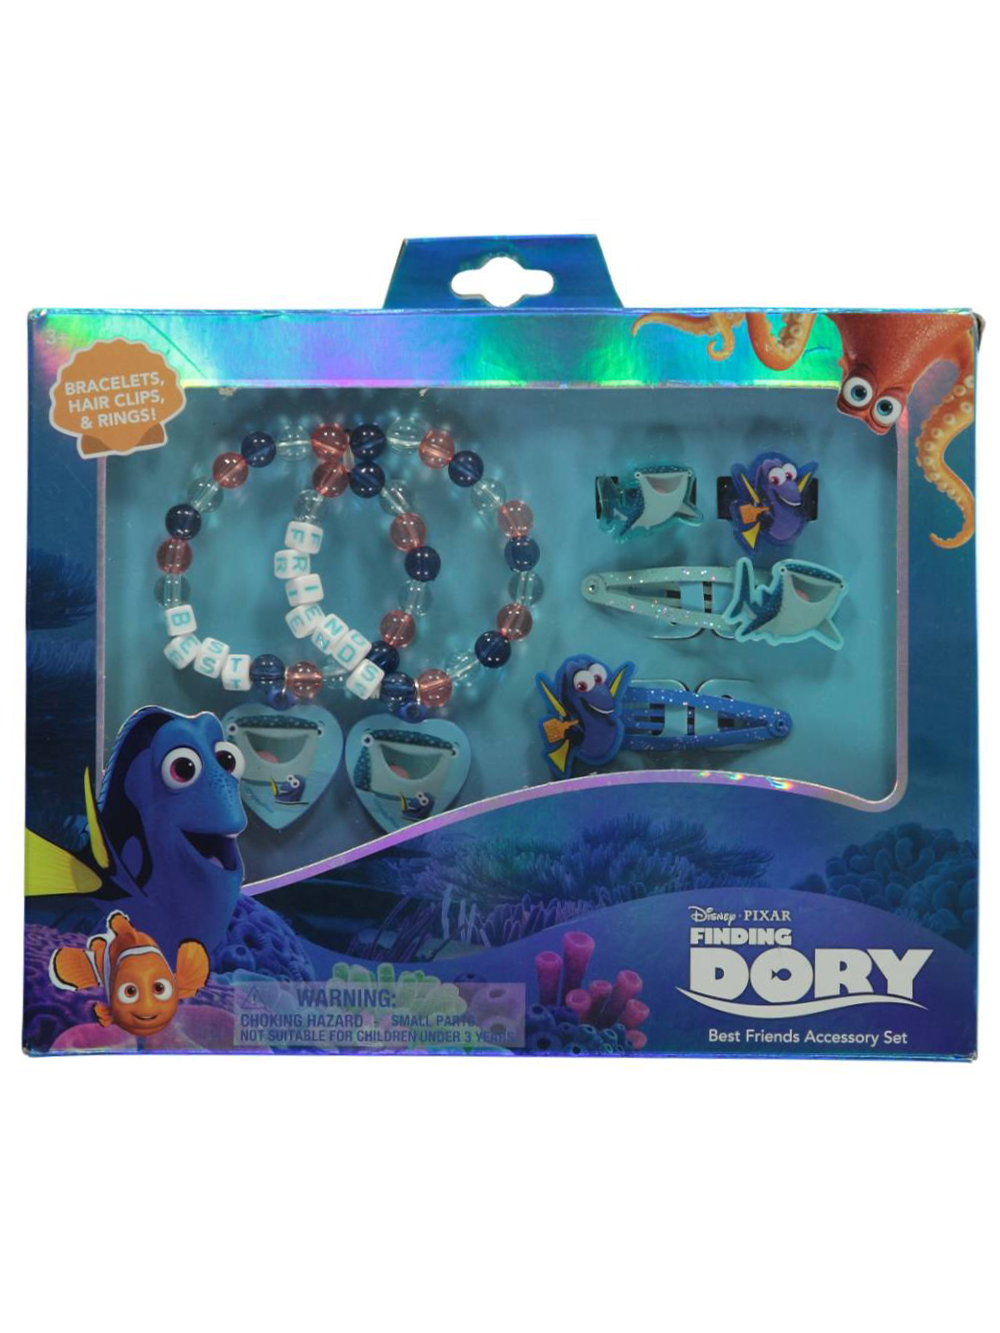 Finding Dory Best Friends Accessory Set